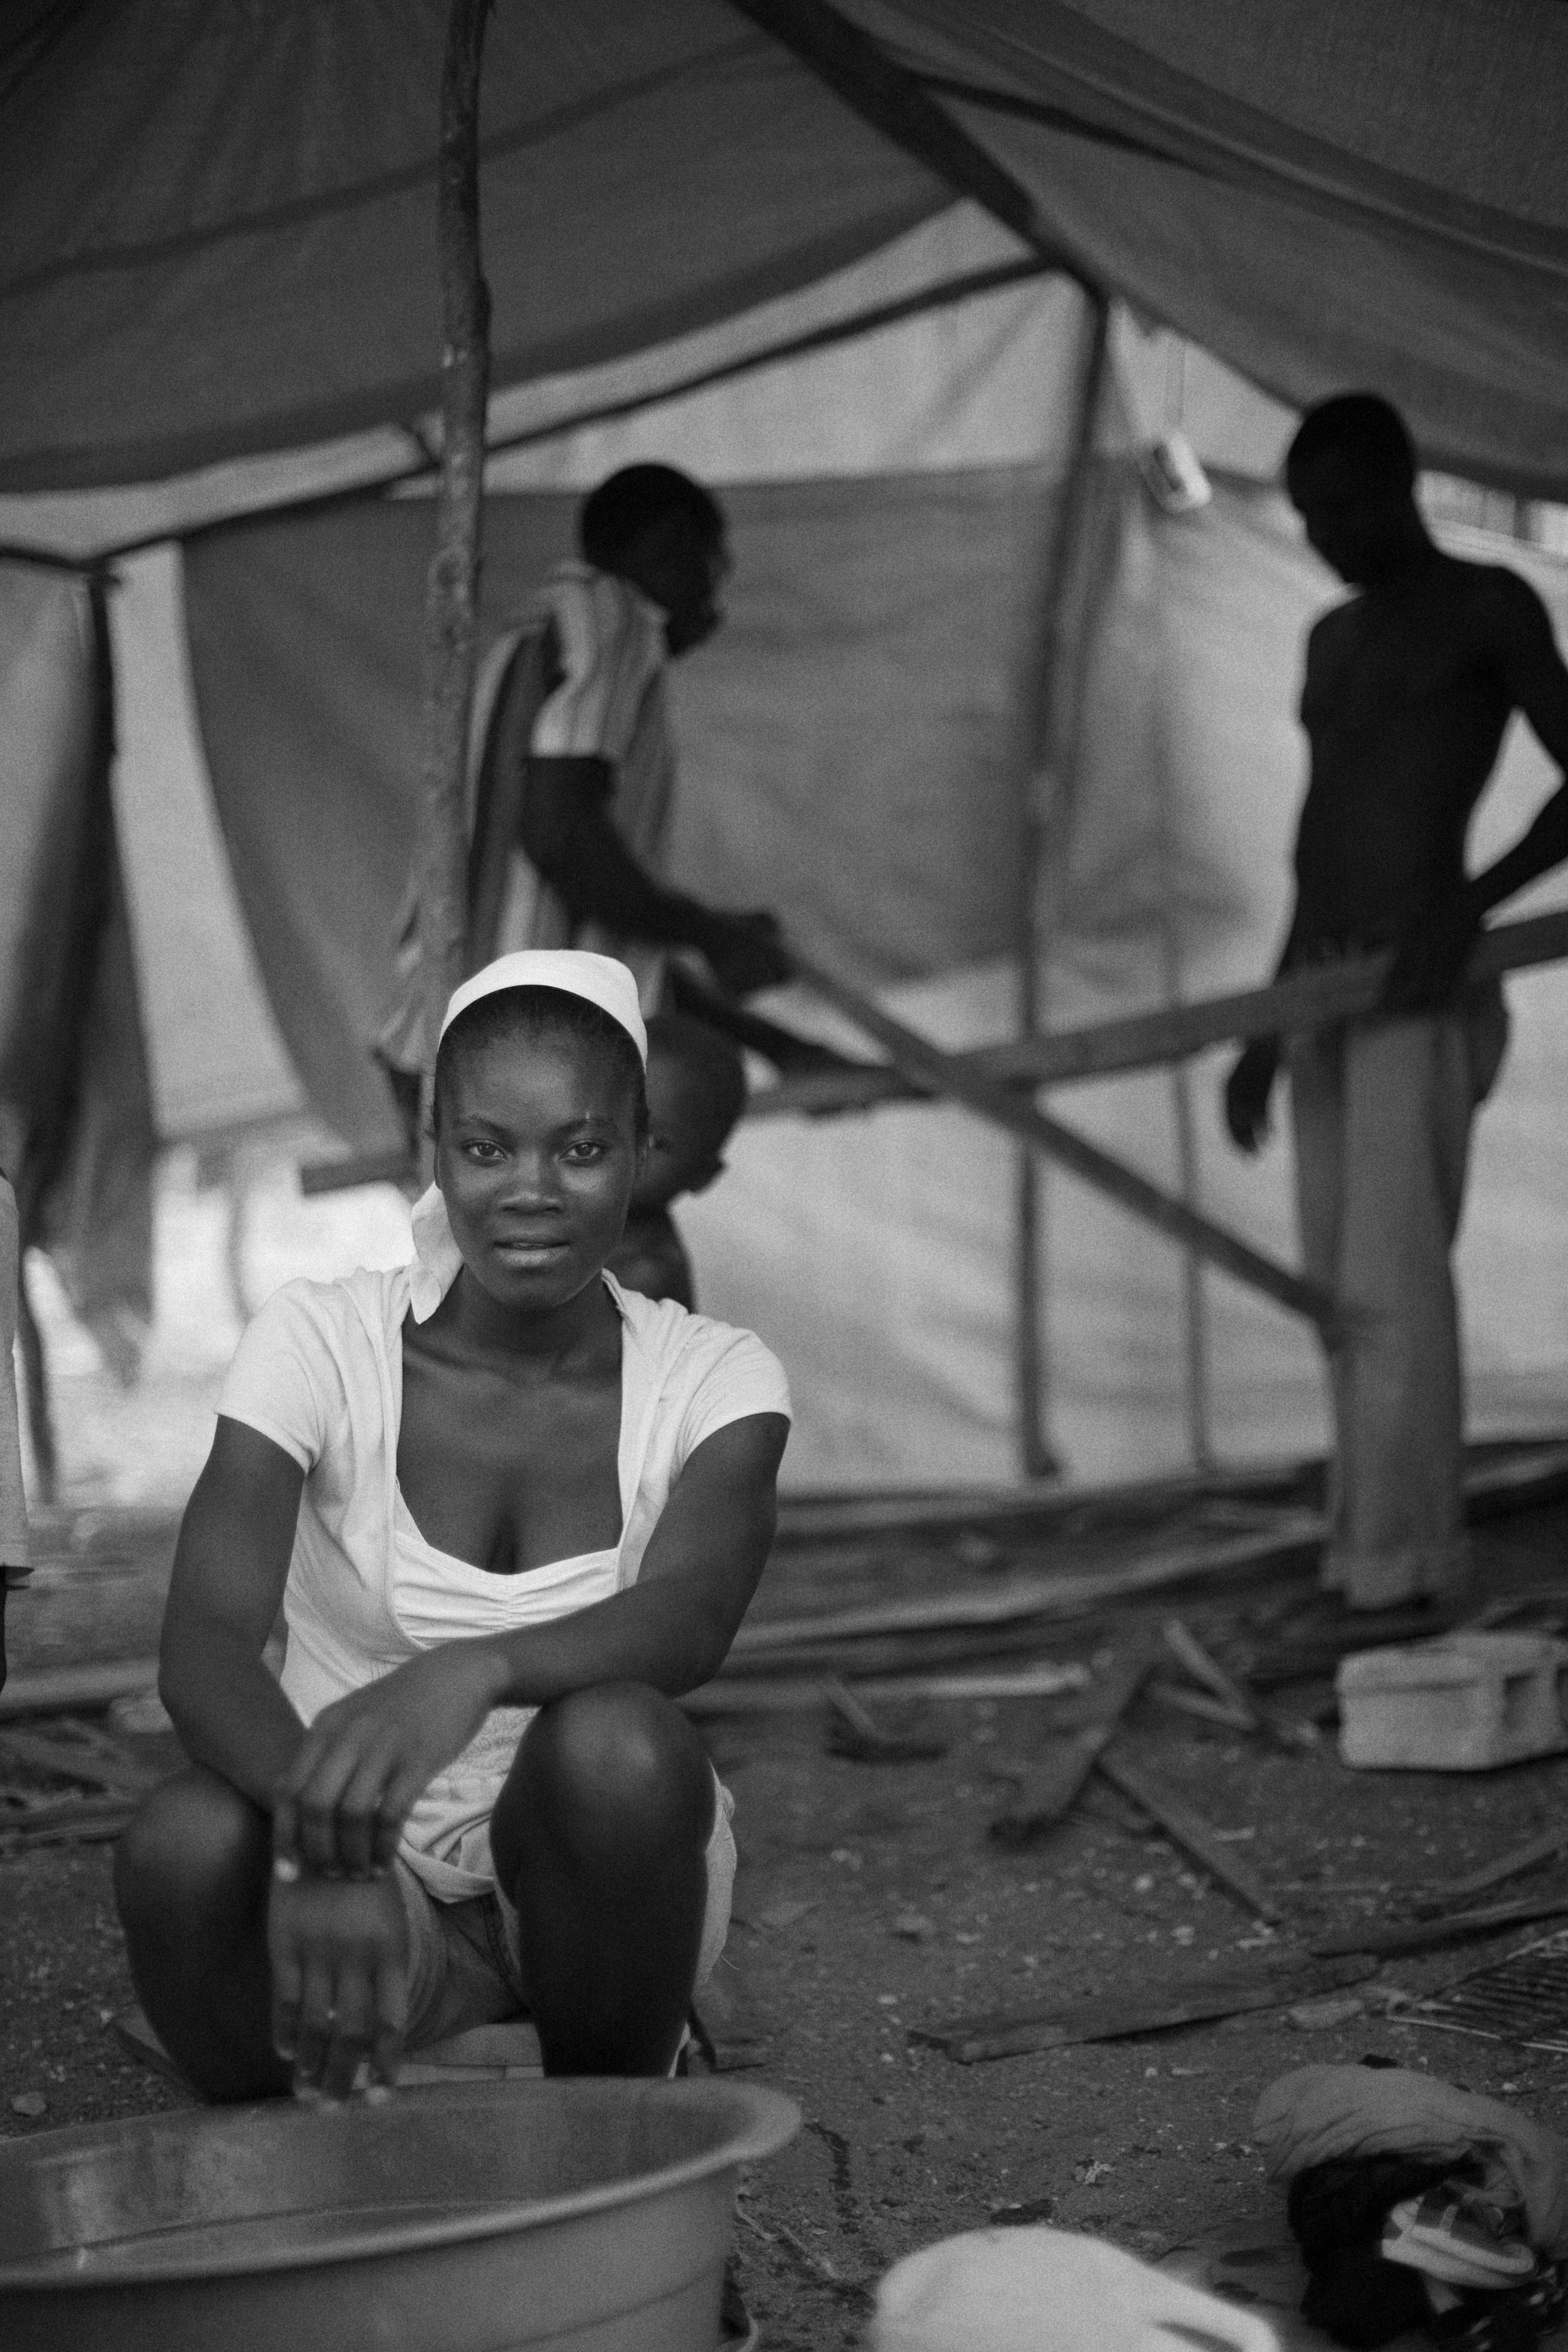 January 15, 2018   Haiti remembrance day 3.  One of my favorite portraits. (Note: On a fellowship at the Dart Center for Journalism and Trauma this was all I could post on that day as we were not connecting to the internet for much of the day.)